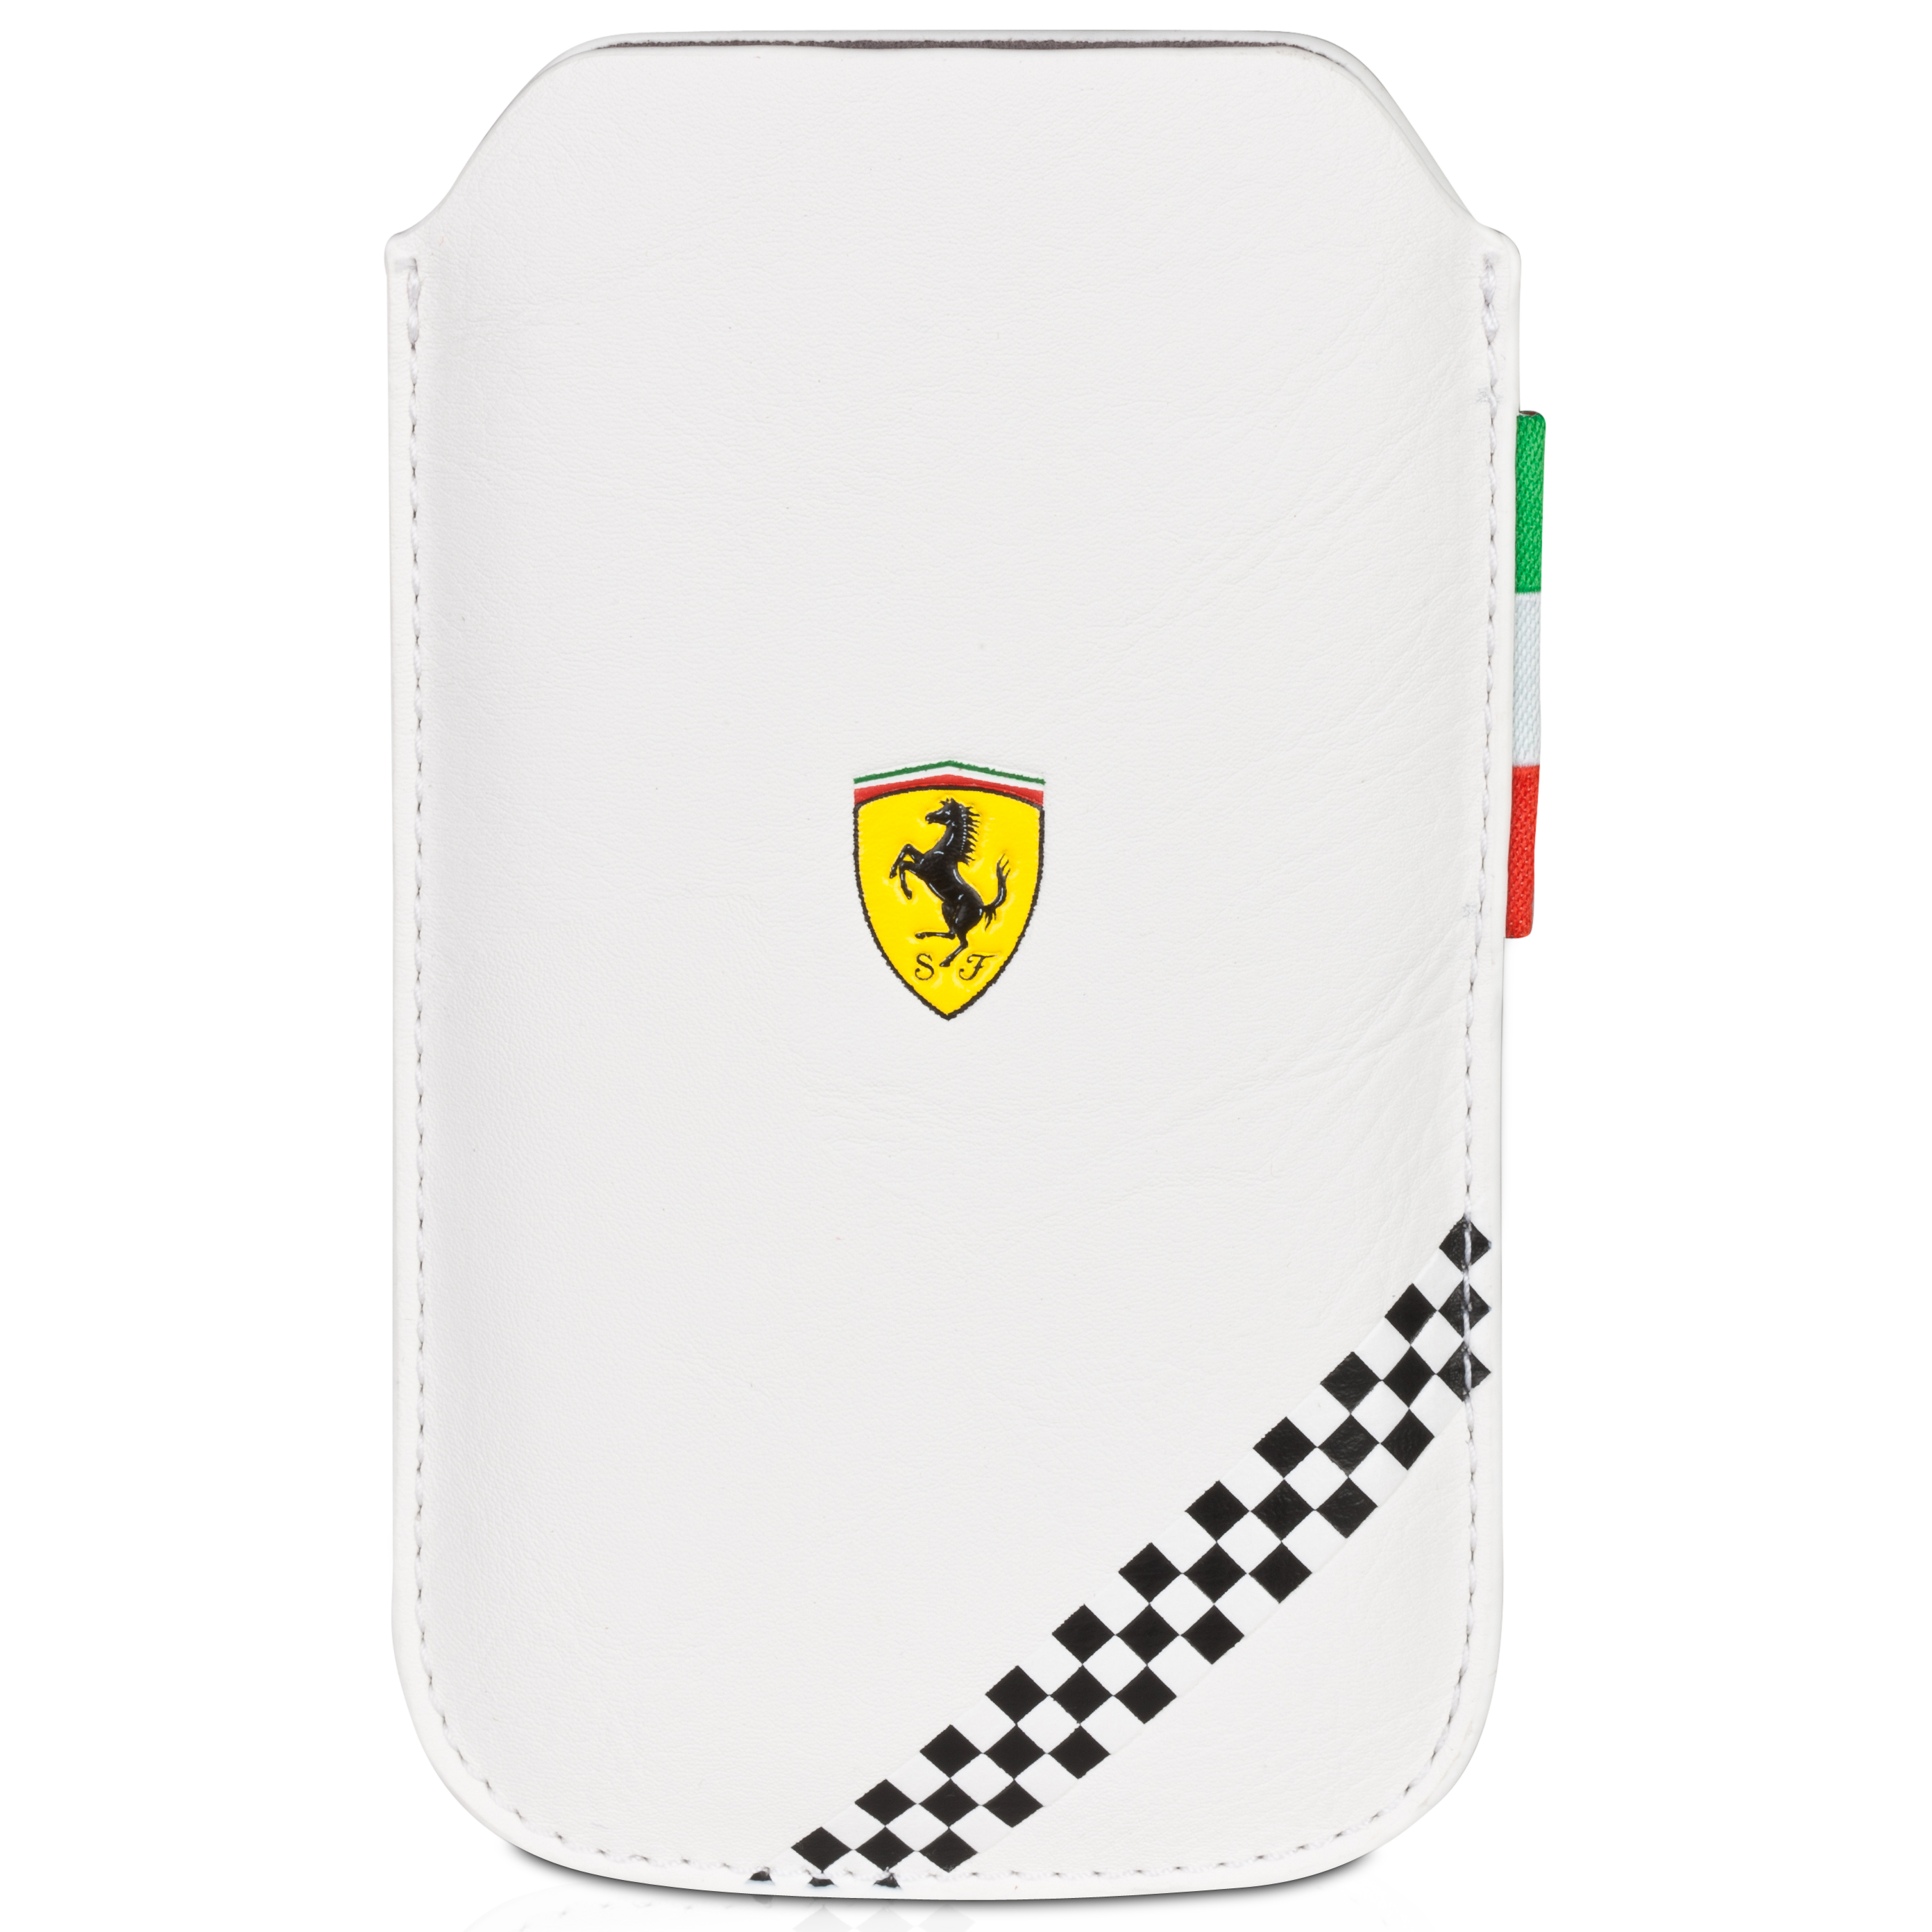 Scuderia Ferrari F1 Medium Phone Sleeve - Black